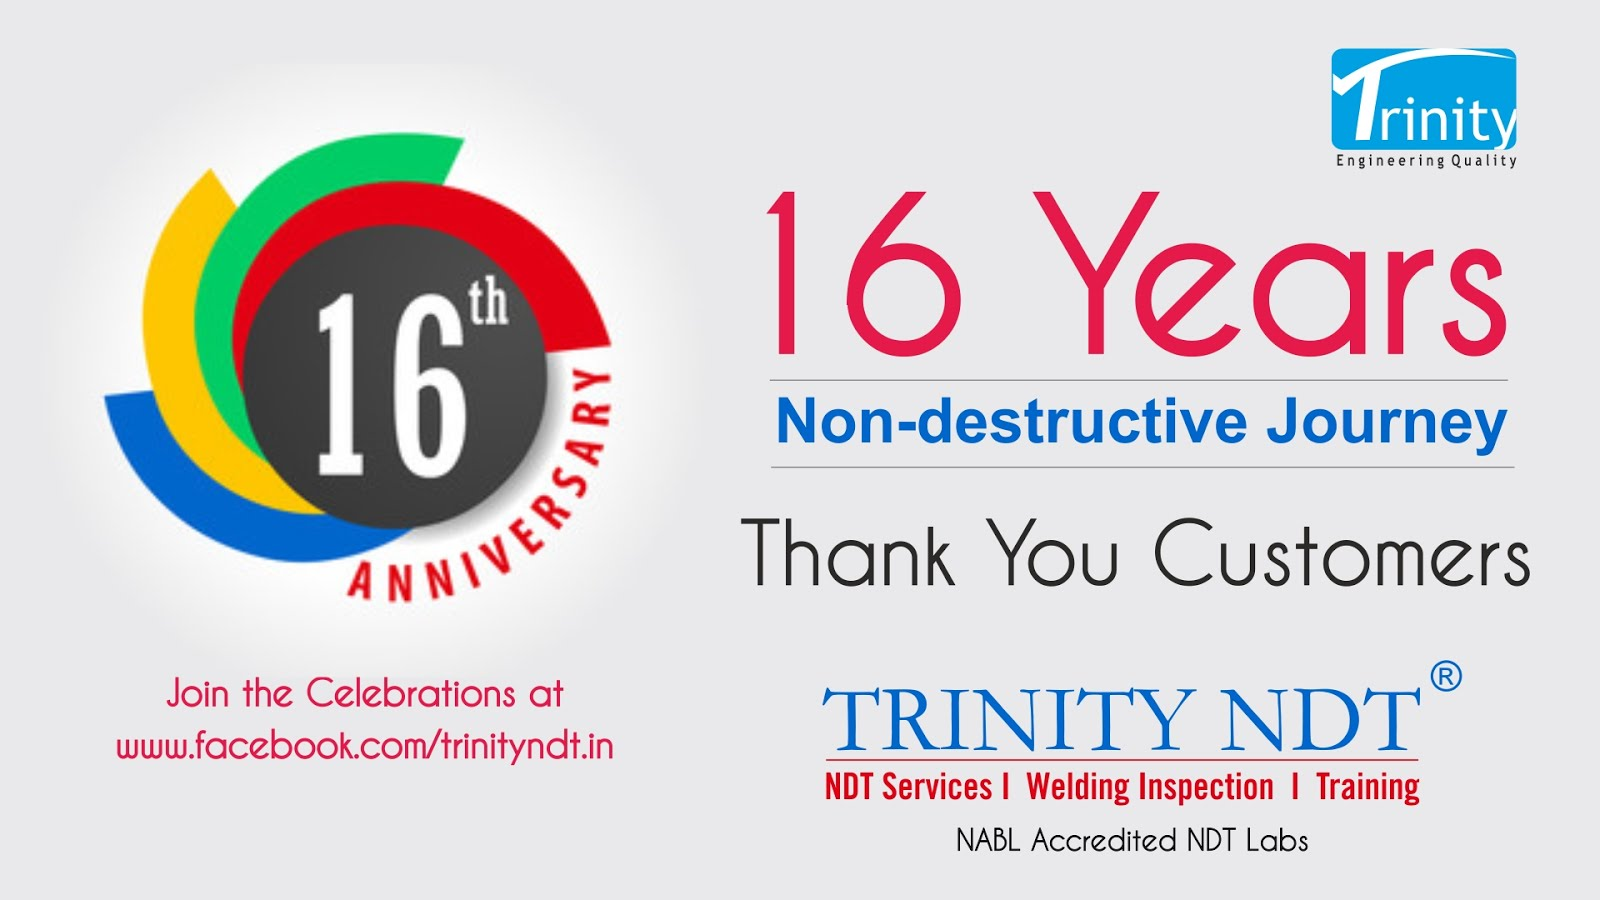 16th Anniversary Celebrations at Trinity NDT